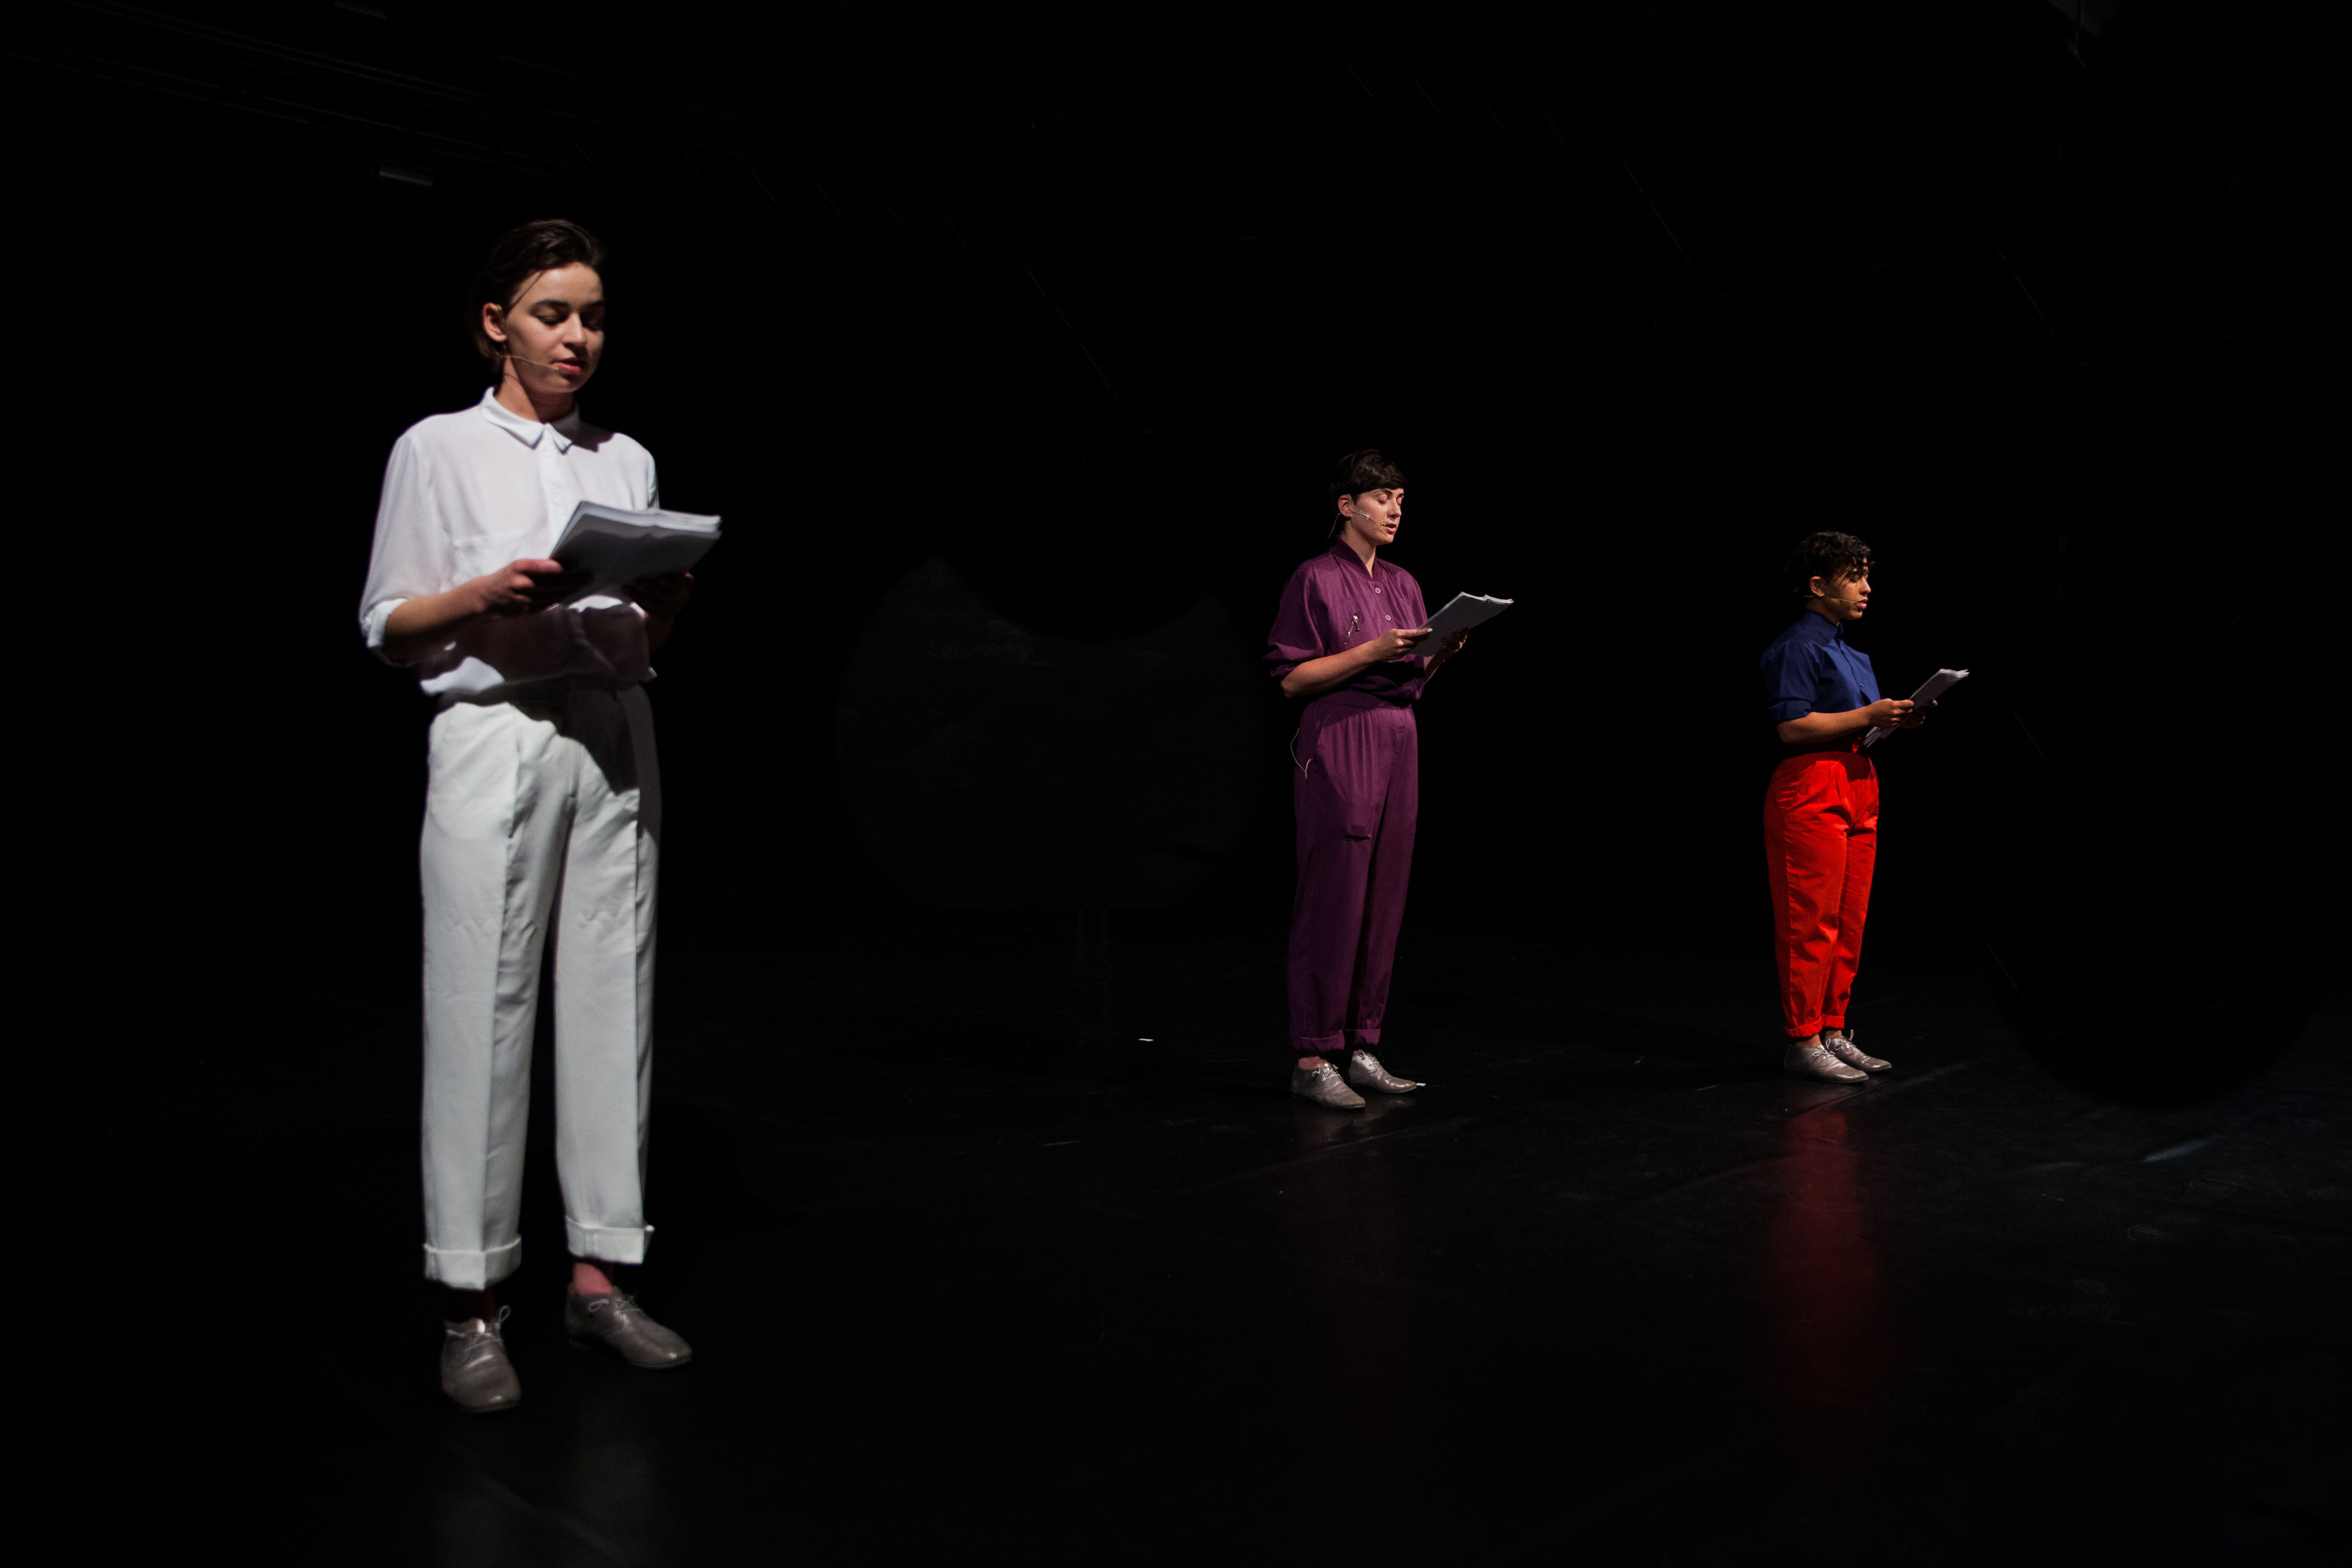 'Offering What We Don't Have to Those Who Don't Want It', concept: Ania Nowak, choreography and performance: Ania Nowak, Julia Rodriguez, Xenia Taniko Dwertmann, produced by Ania Nowak/ Sophiensaele Berlin. Photo: Alina Usurelu.